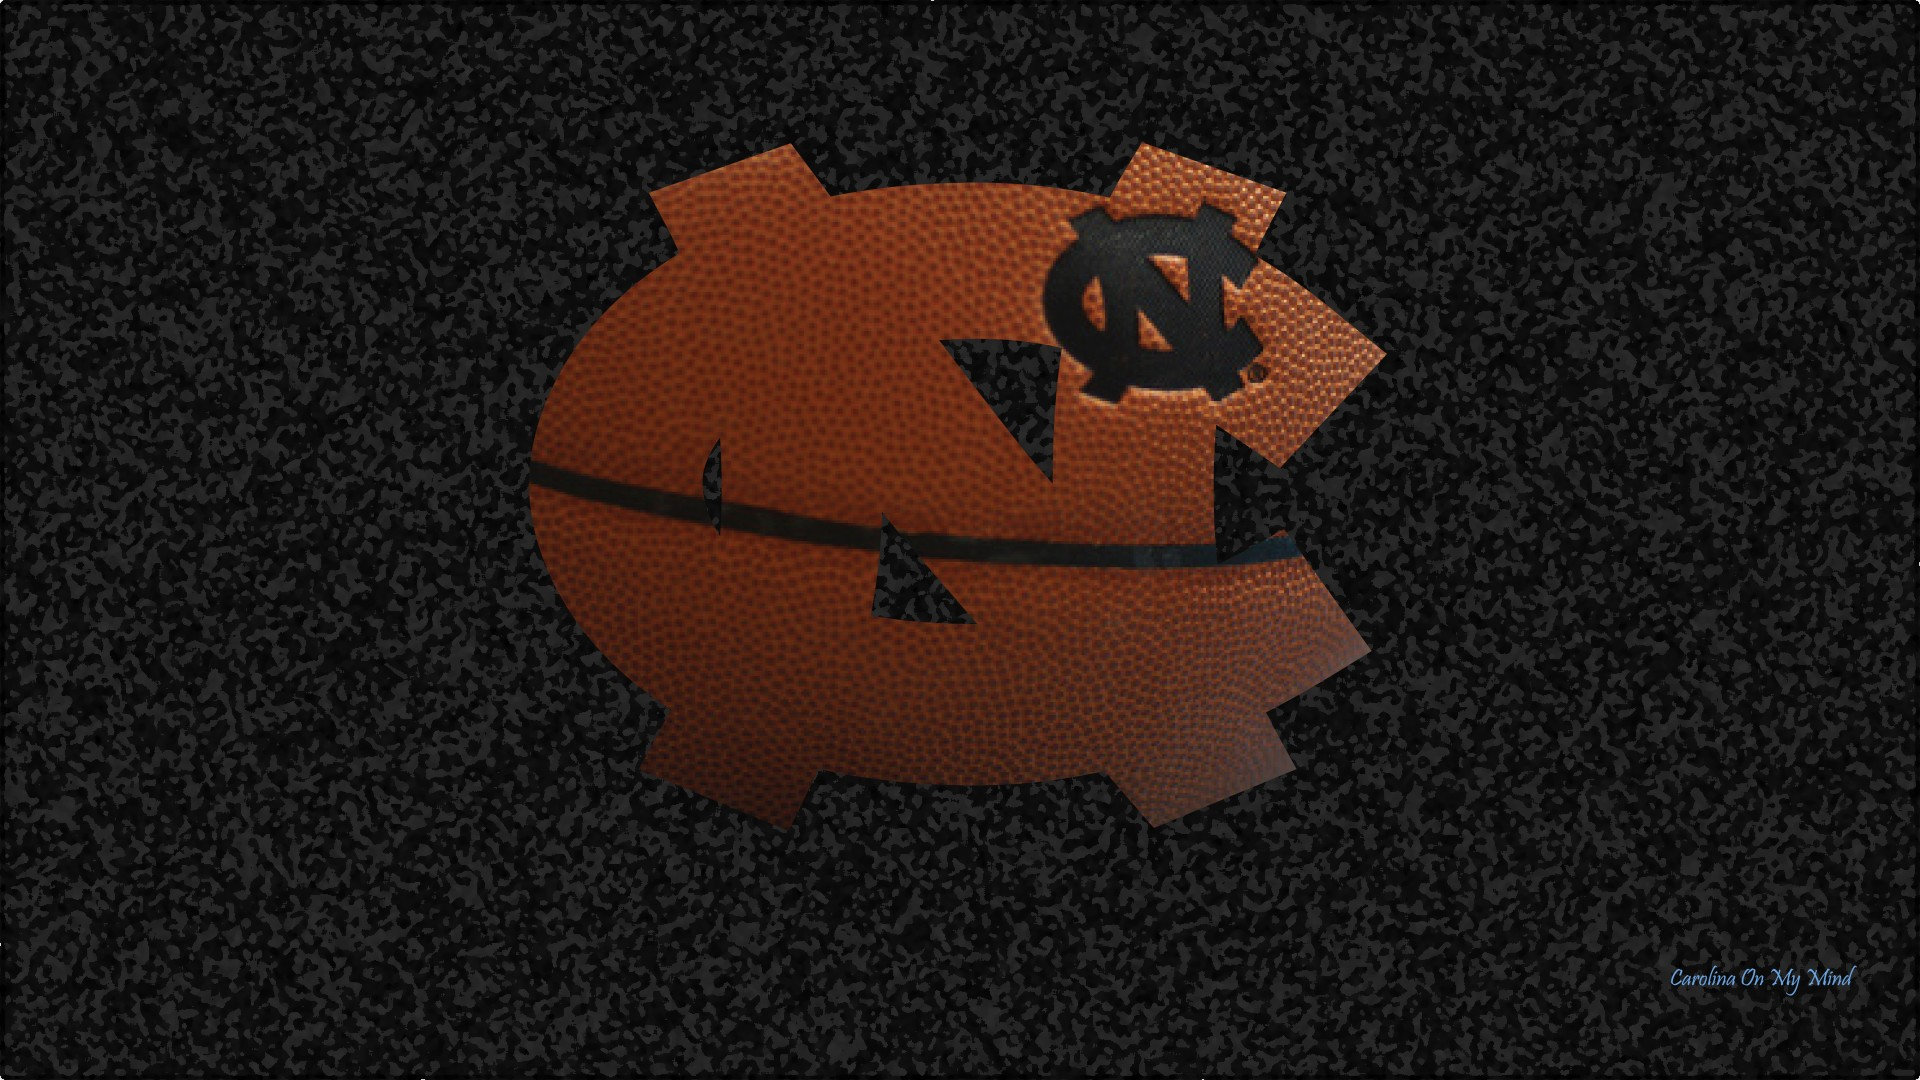 UNC Wallpaper - Basketball Grain NC Logo on Textured Black Background 1920 x 1080